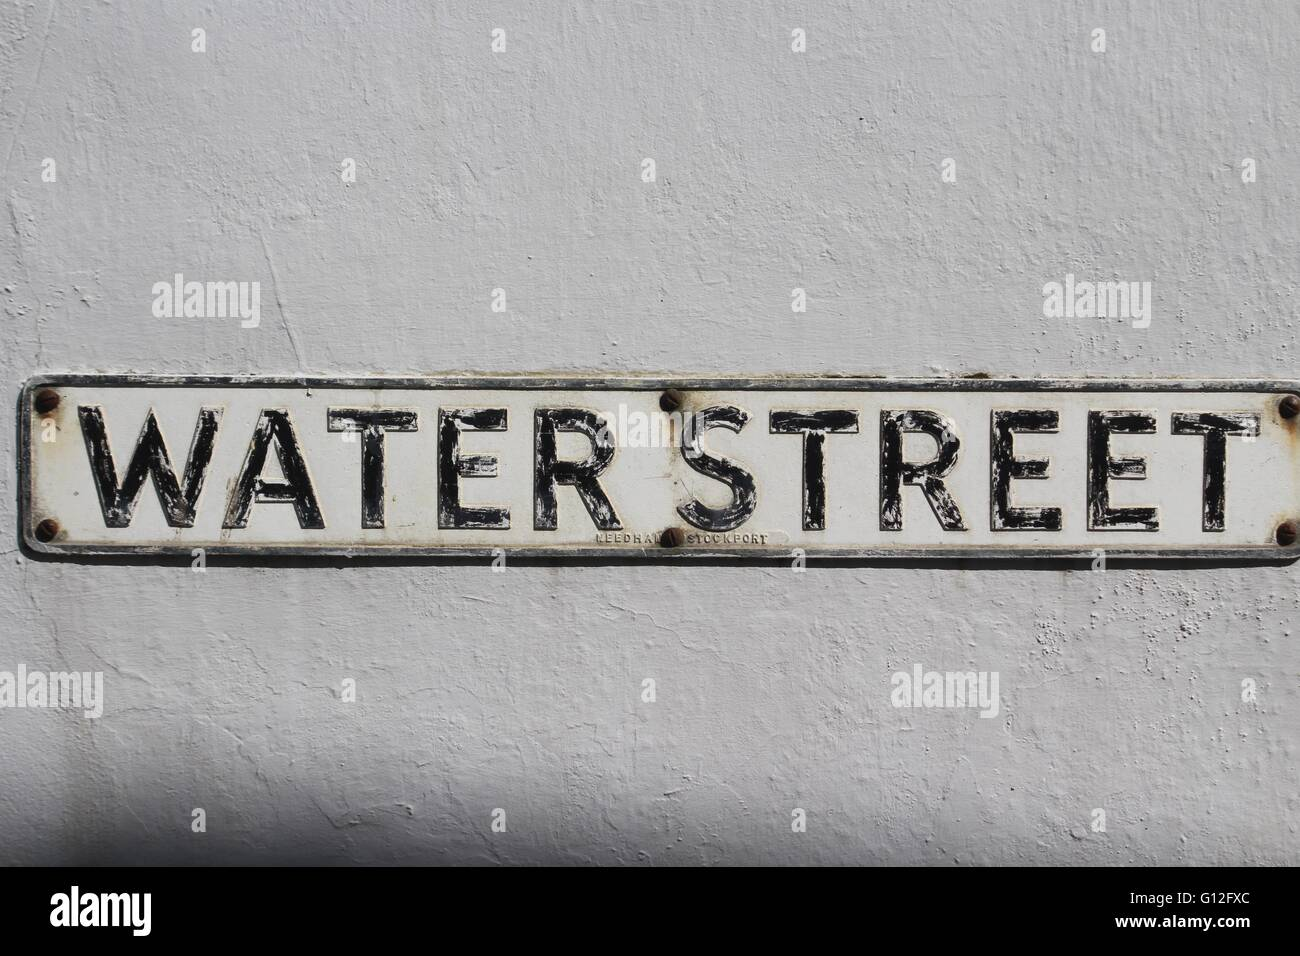 White Metal Letters Old Metal Street Sign With Black Letters On A White Background